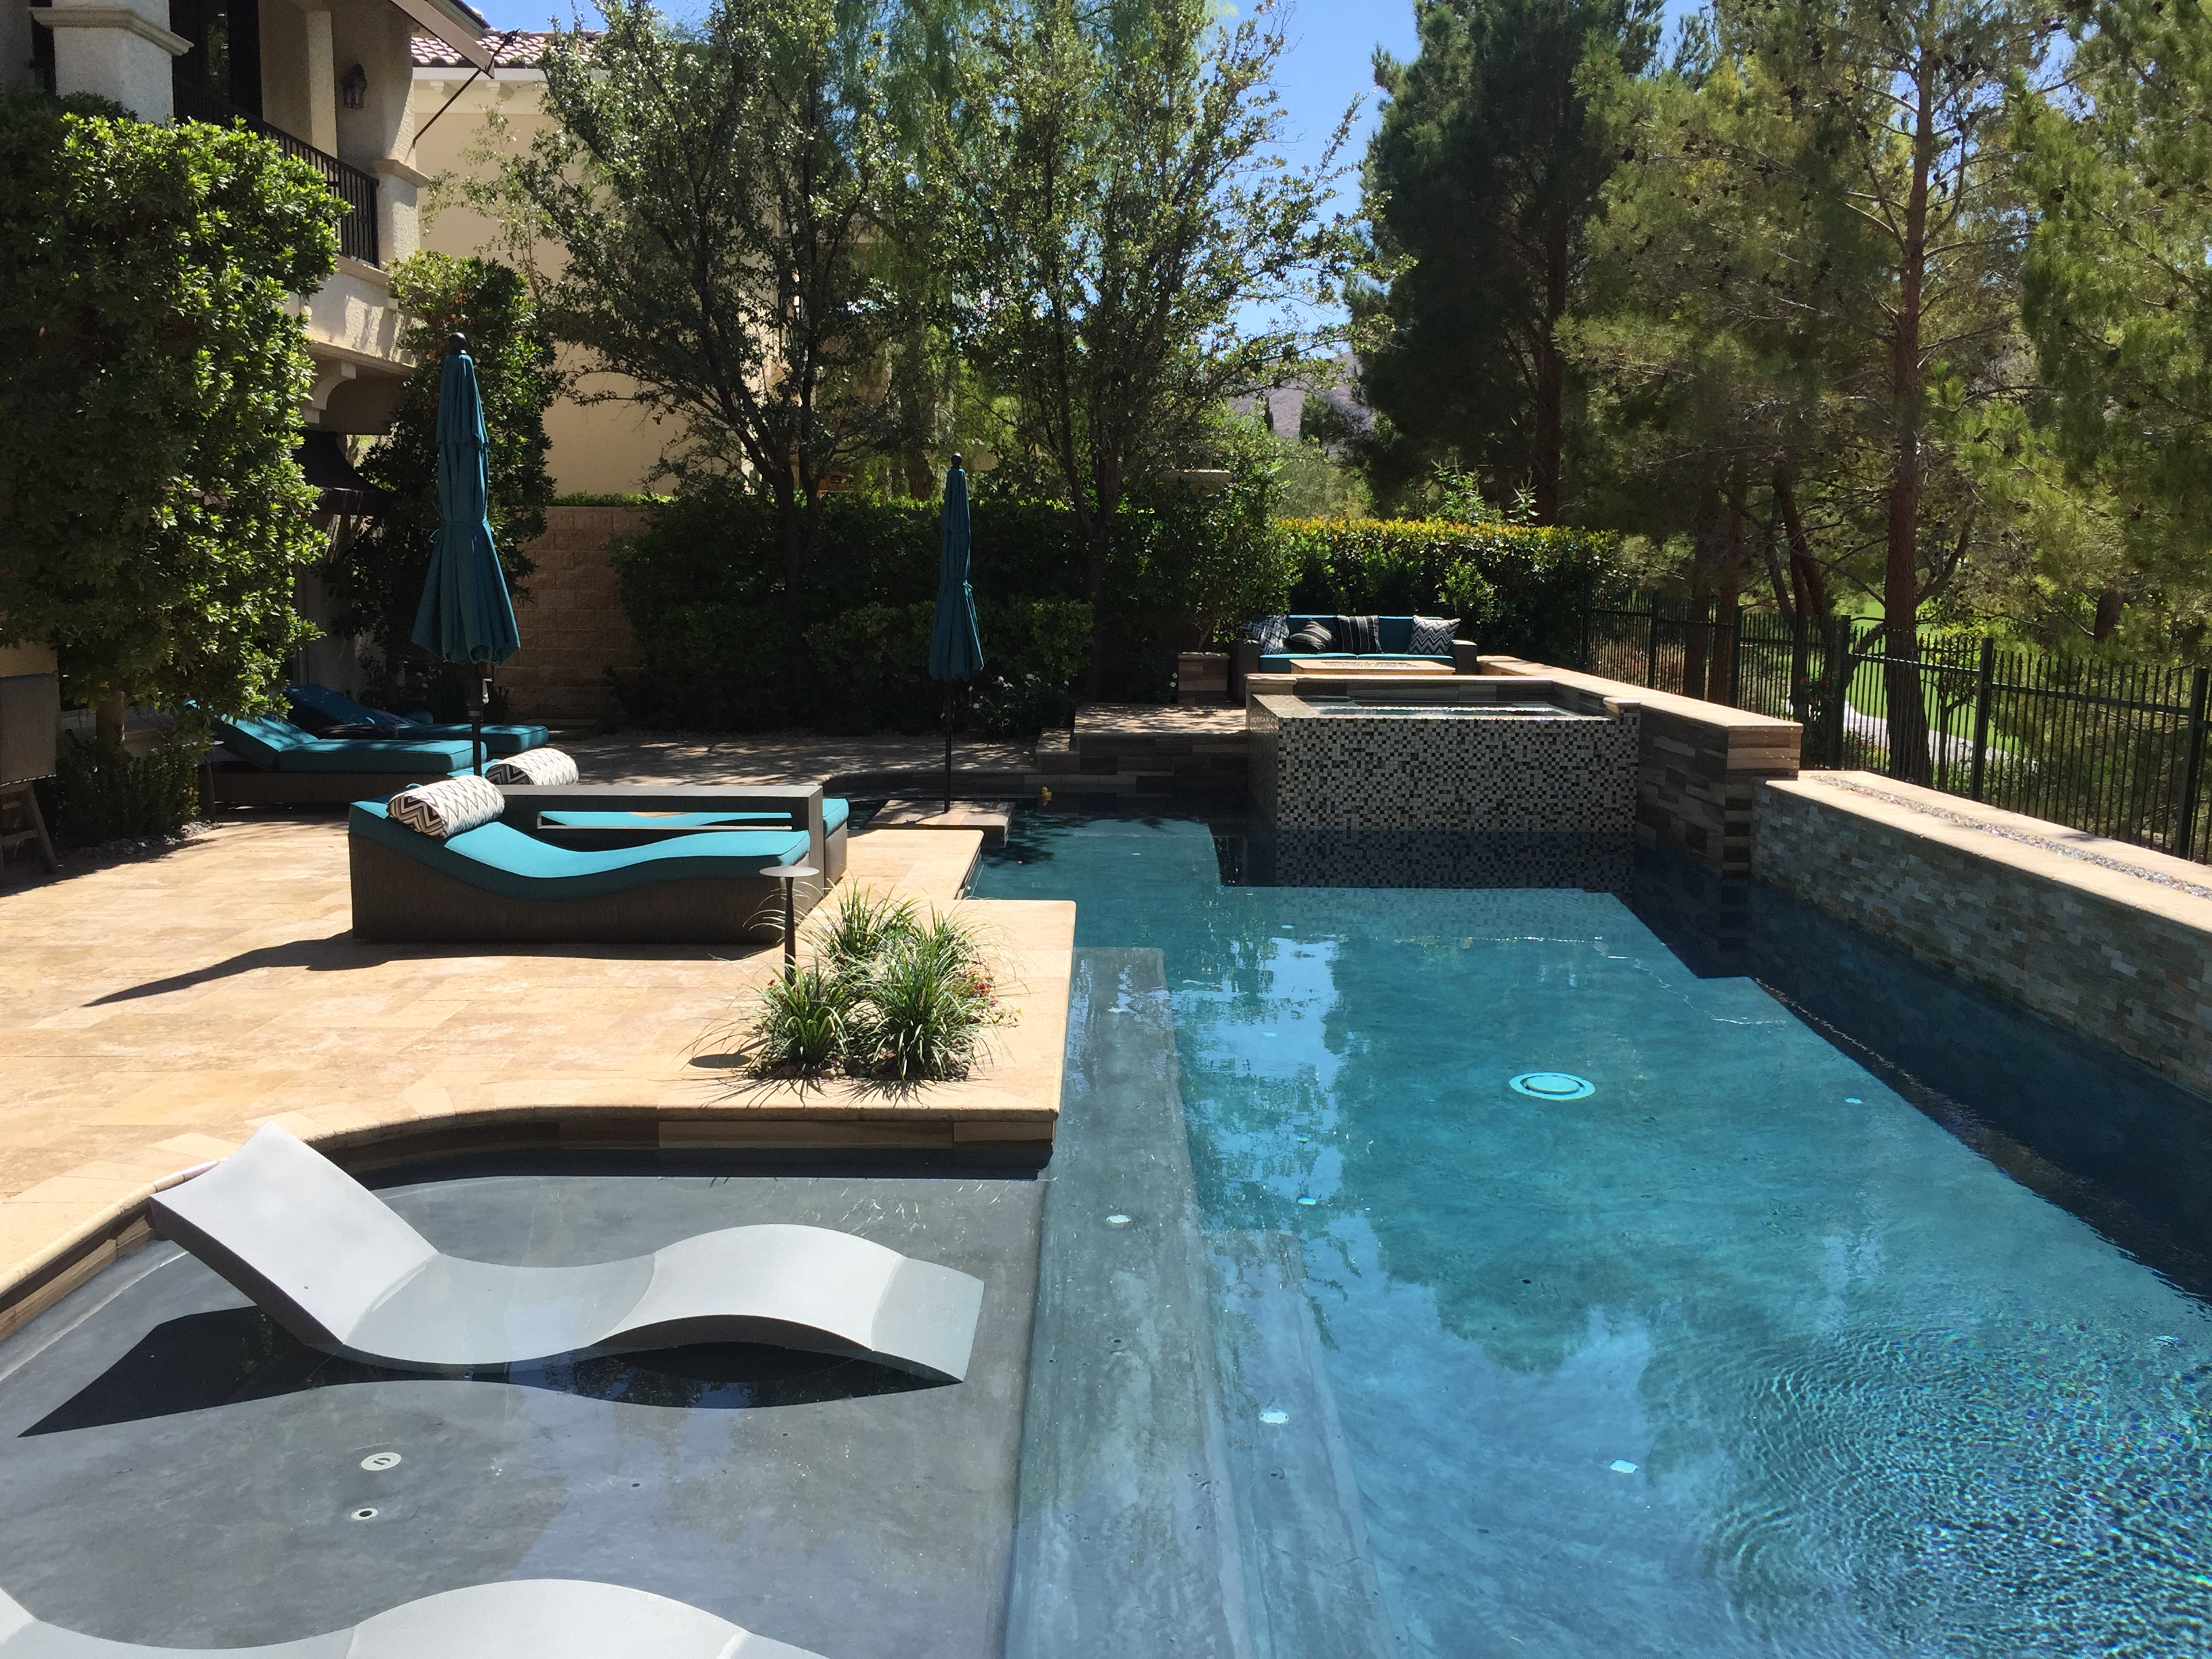 Backyard Resort - Las Vegas pool design, pool contractor, pool ...